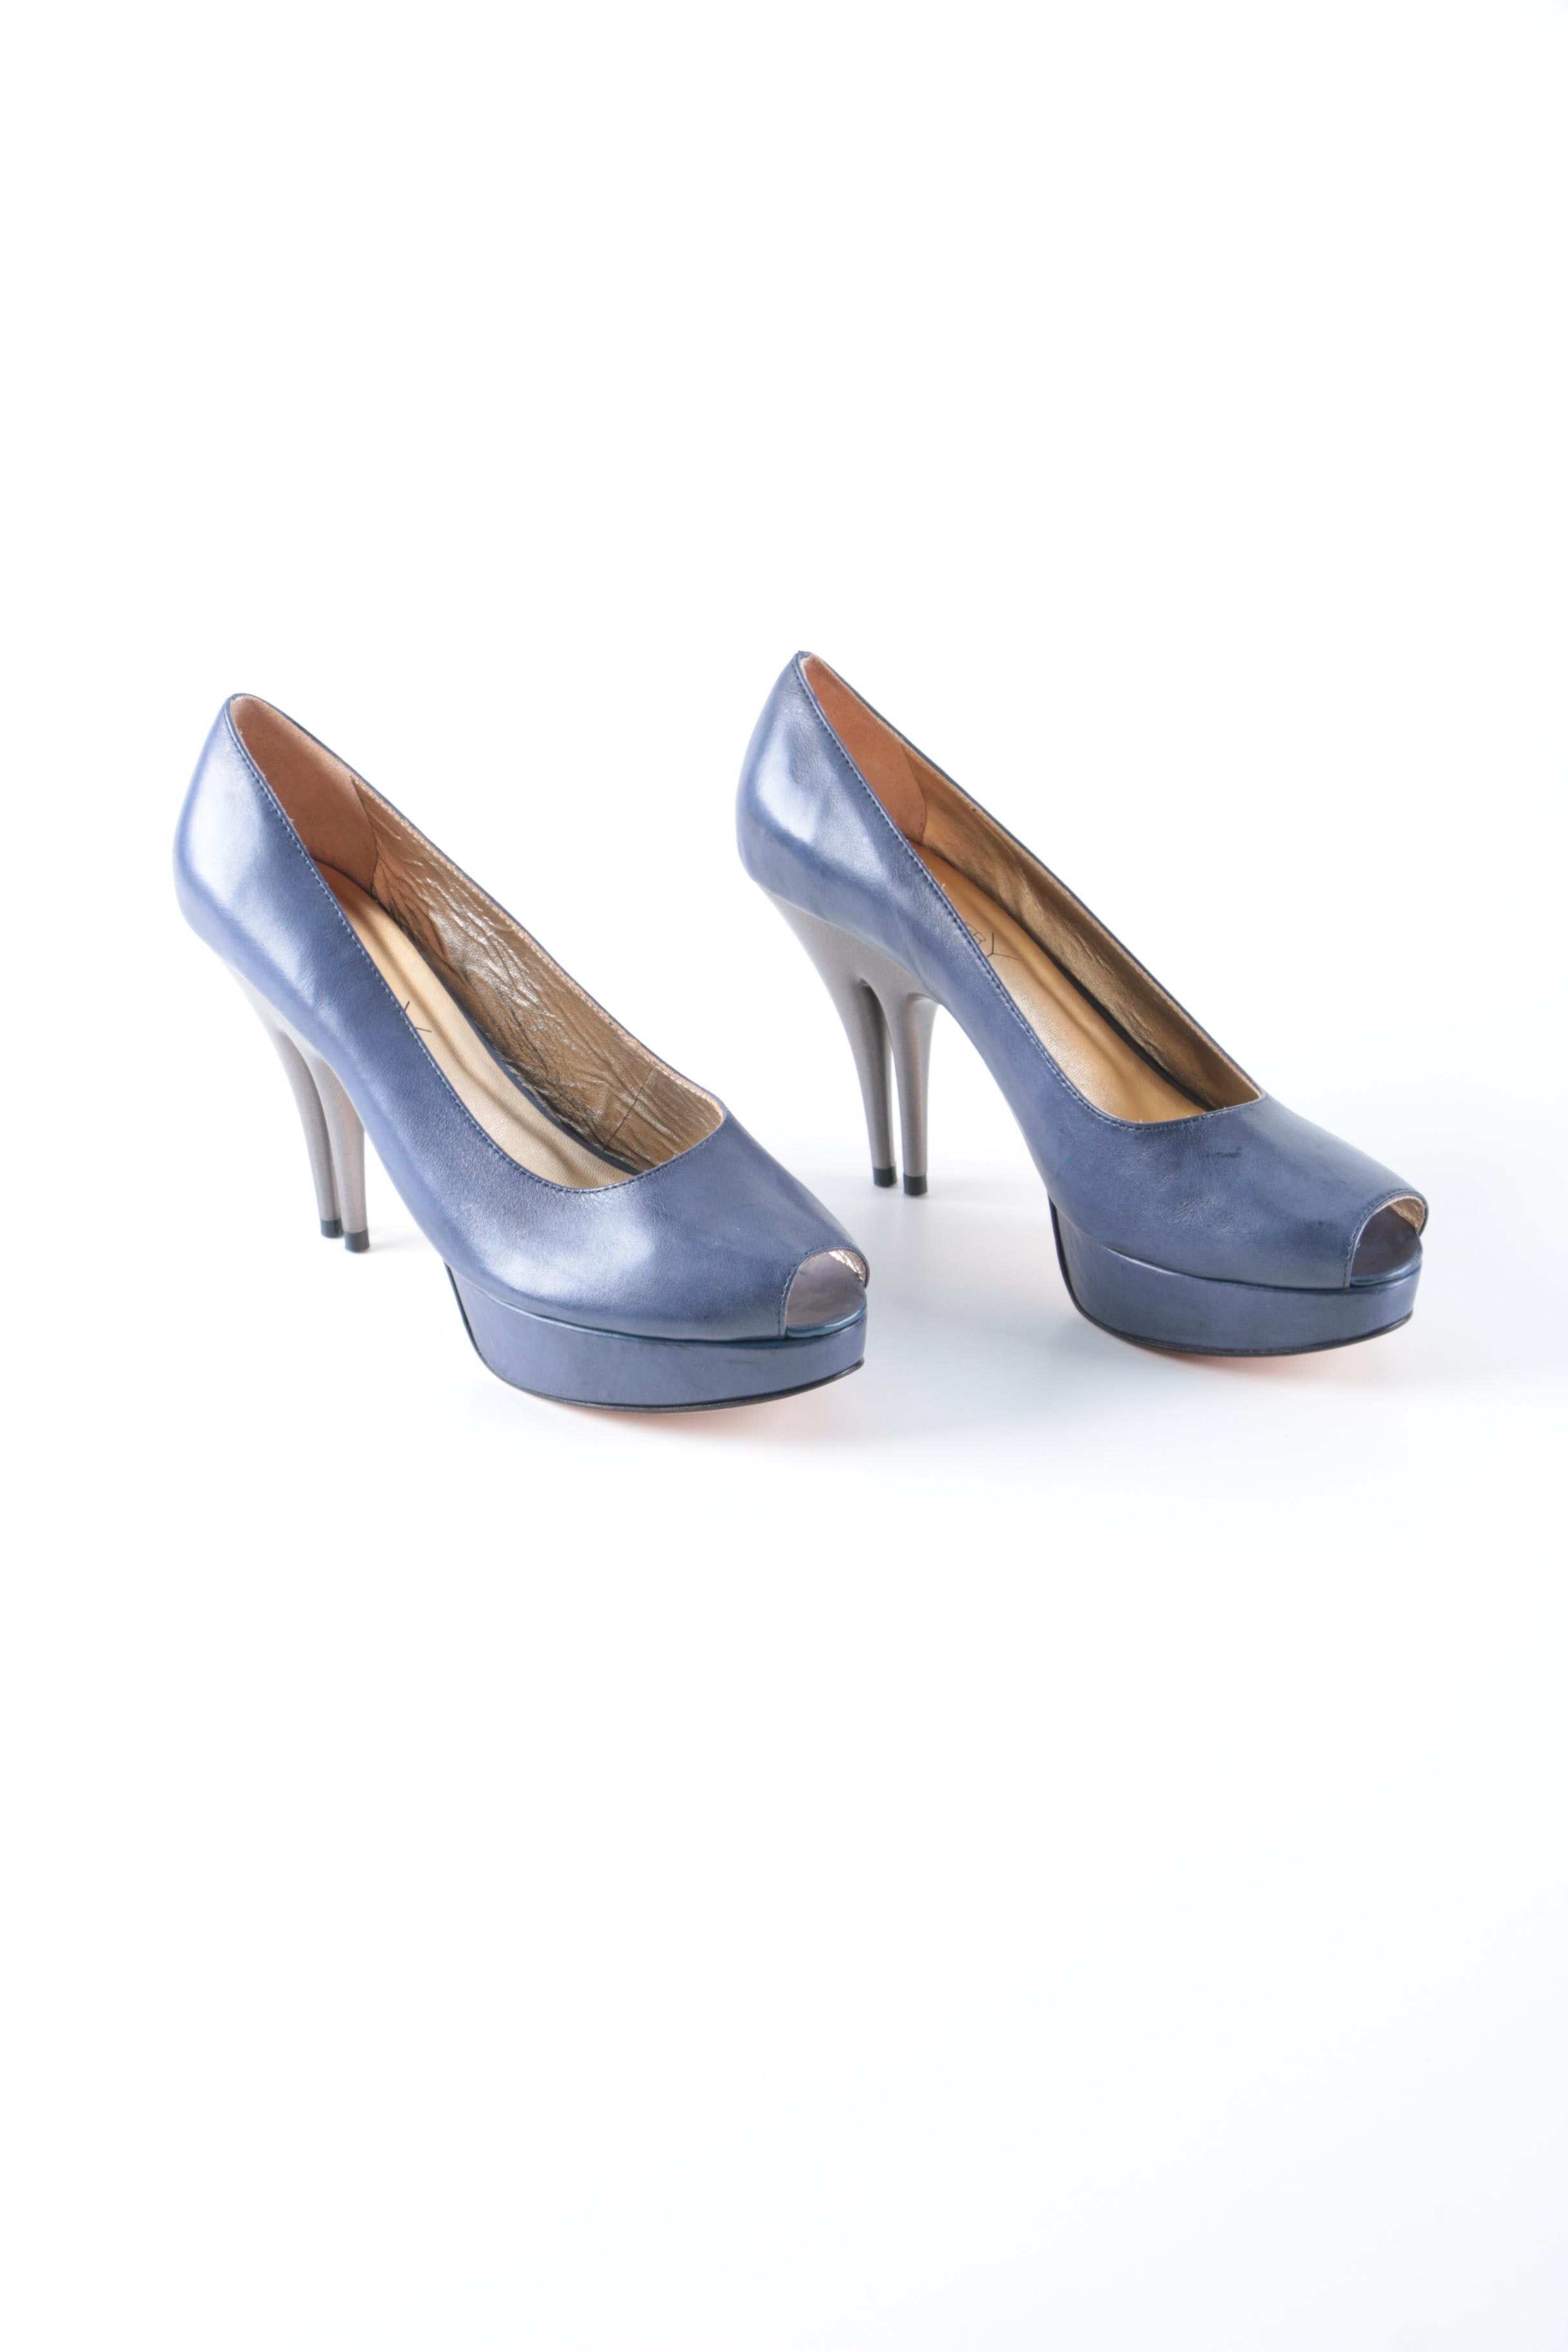 Christopher Coy Collection Prototype Heels in Blueberry Leather